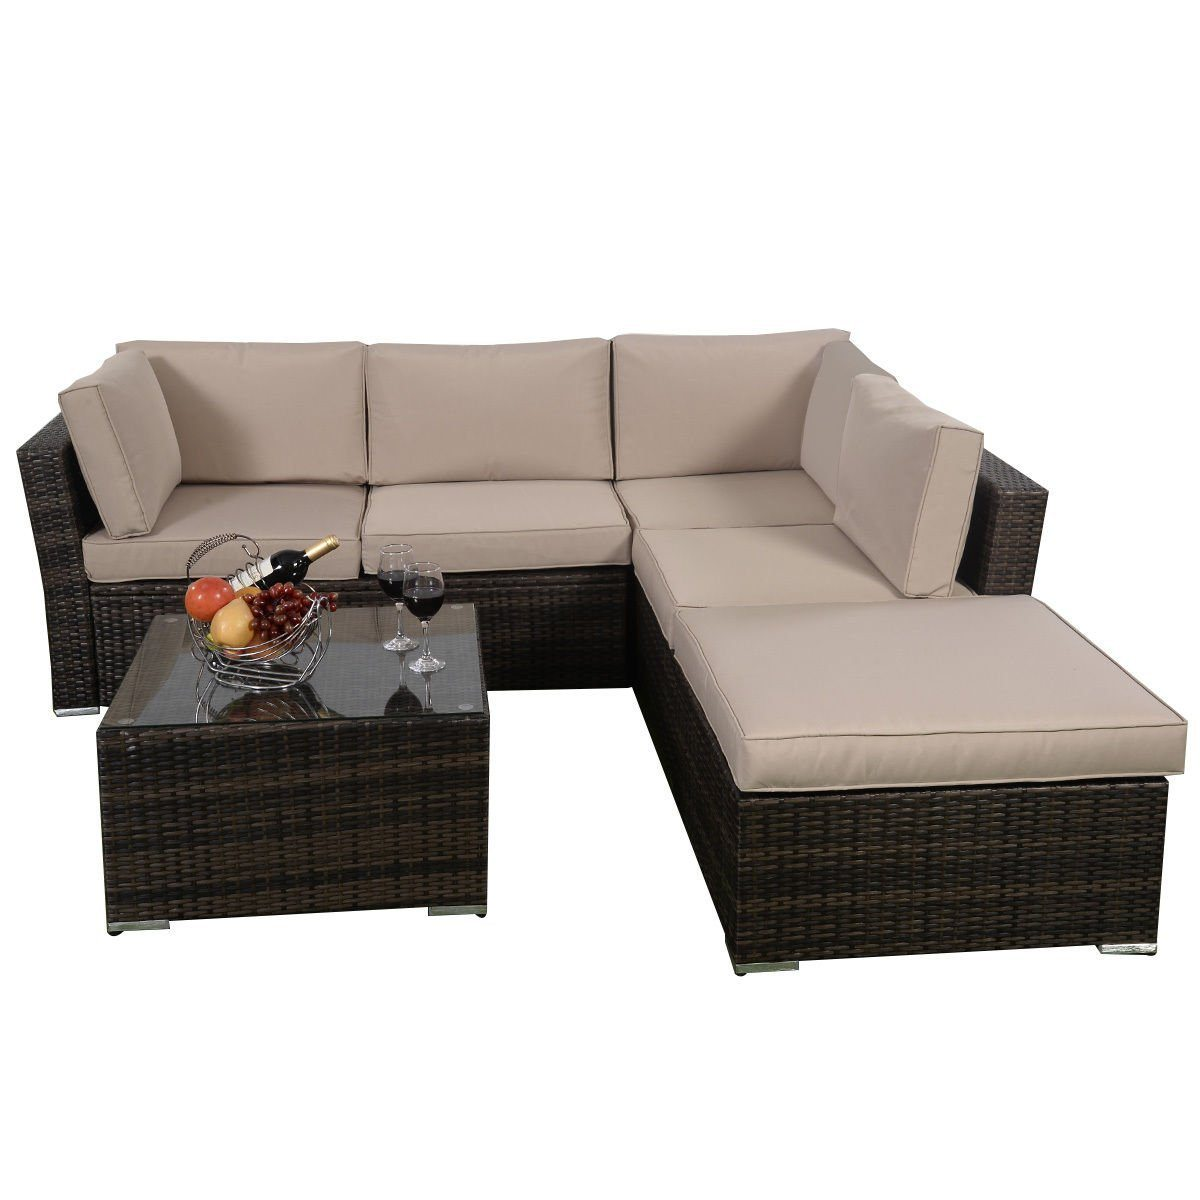 Outdoor Couch Set Giantex 4pc Patio Sectional Furniture Pe Wicker Rattan